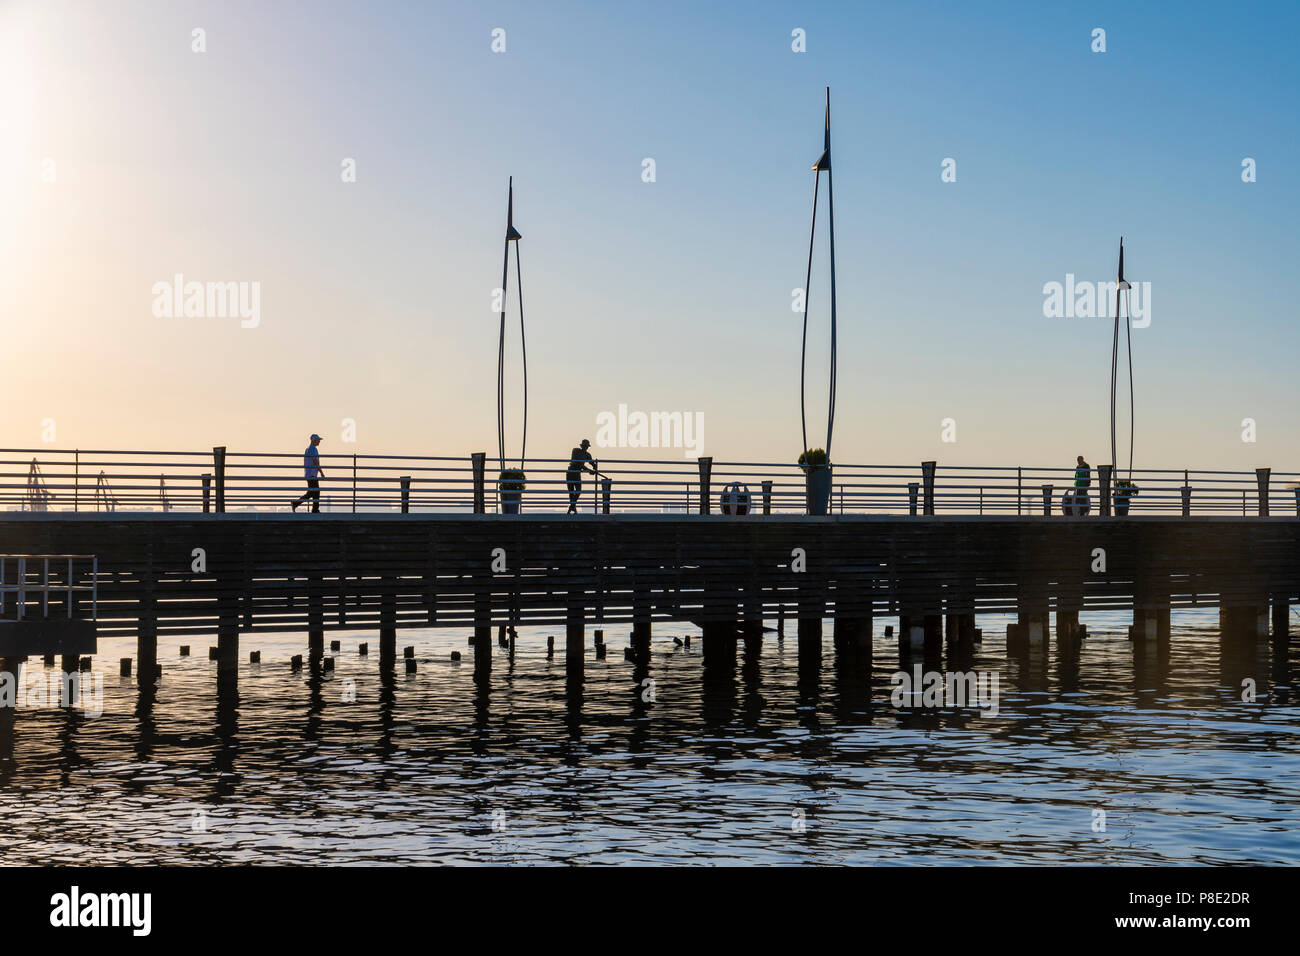 Pier on the seafront   in Baku - Stock Image